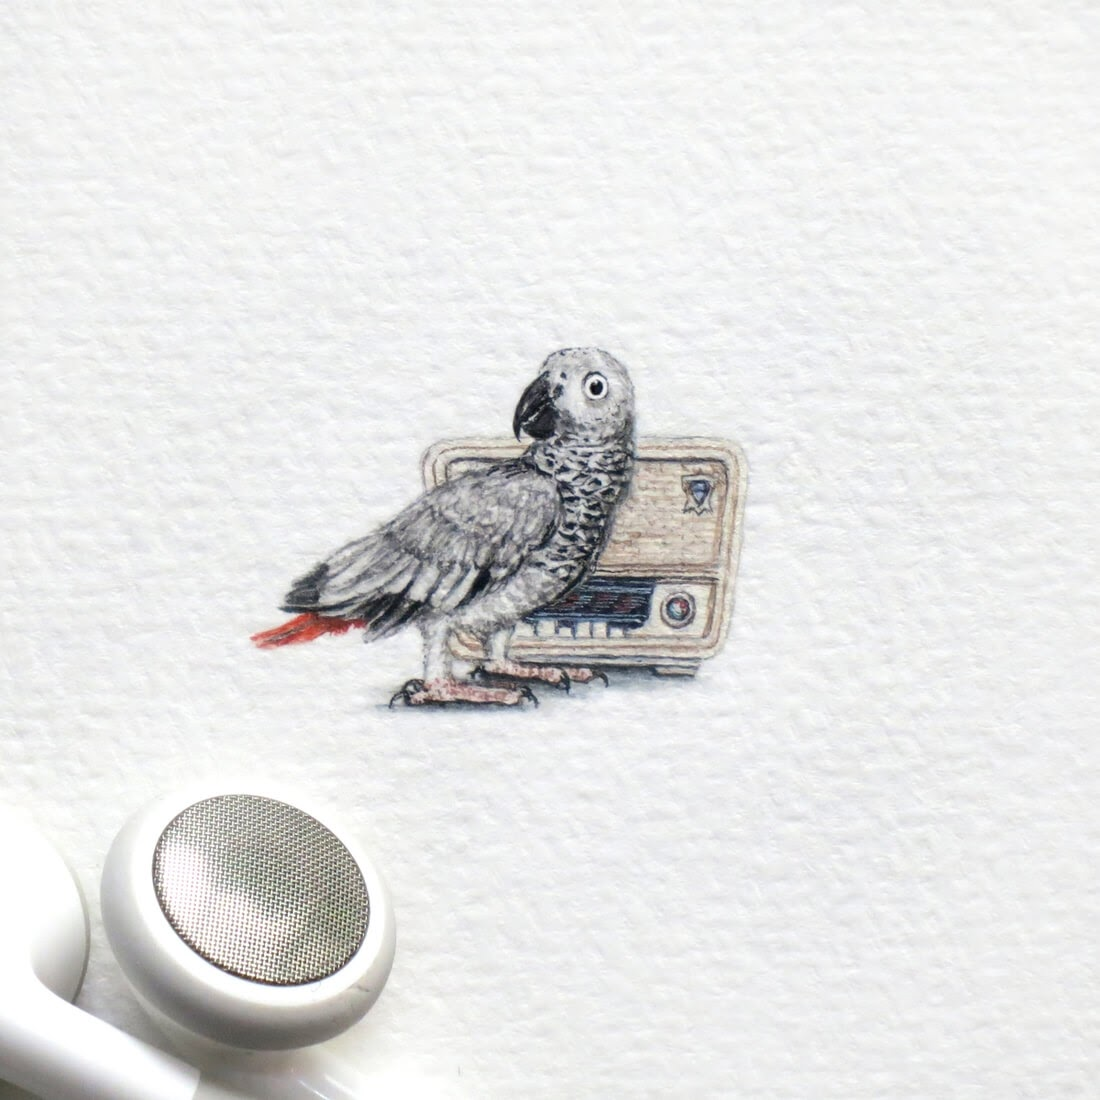 10-Grey-Parrot-Frank Holzenburg Miniature Drawings and Paintings of Animals-www-designstack-co